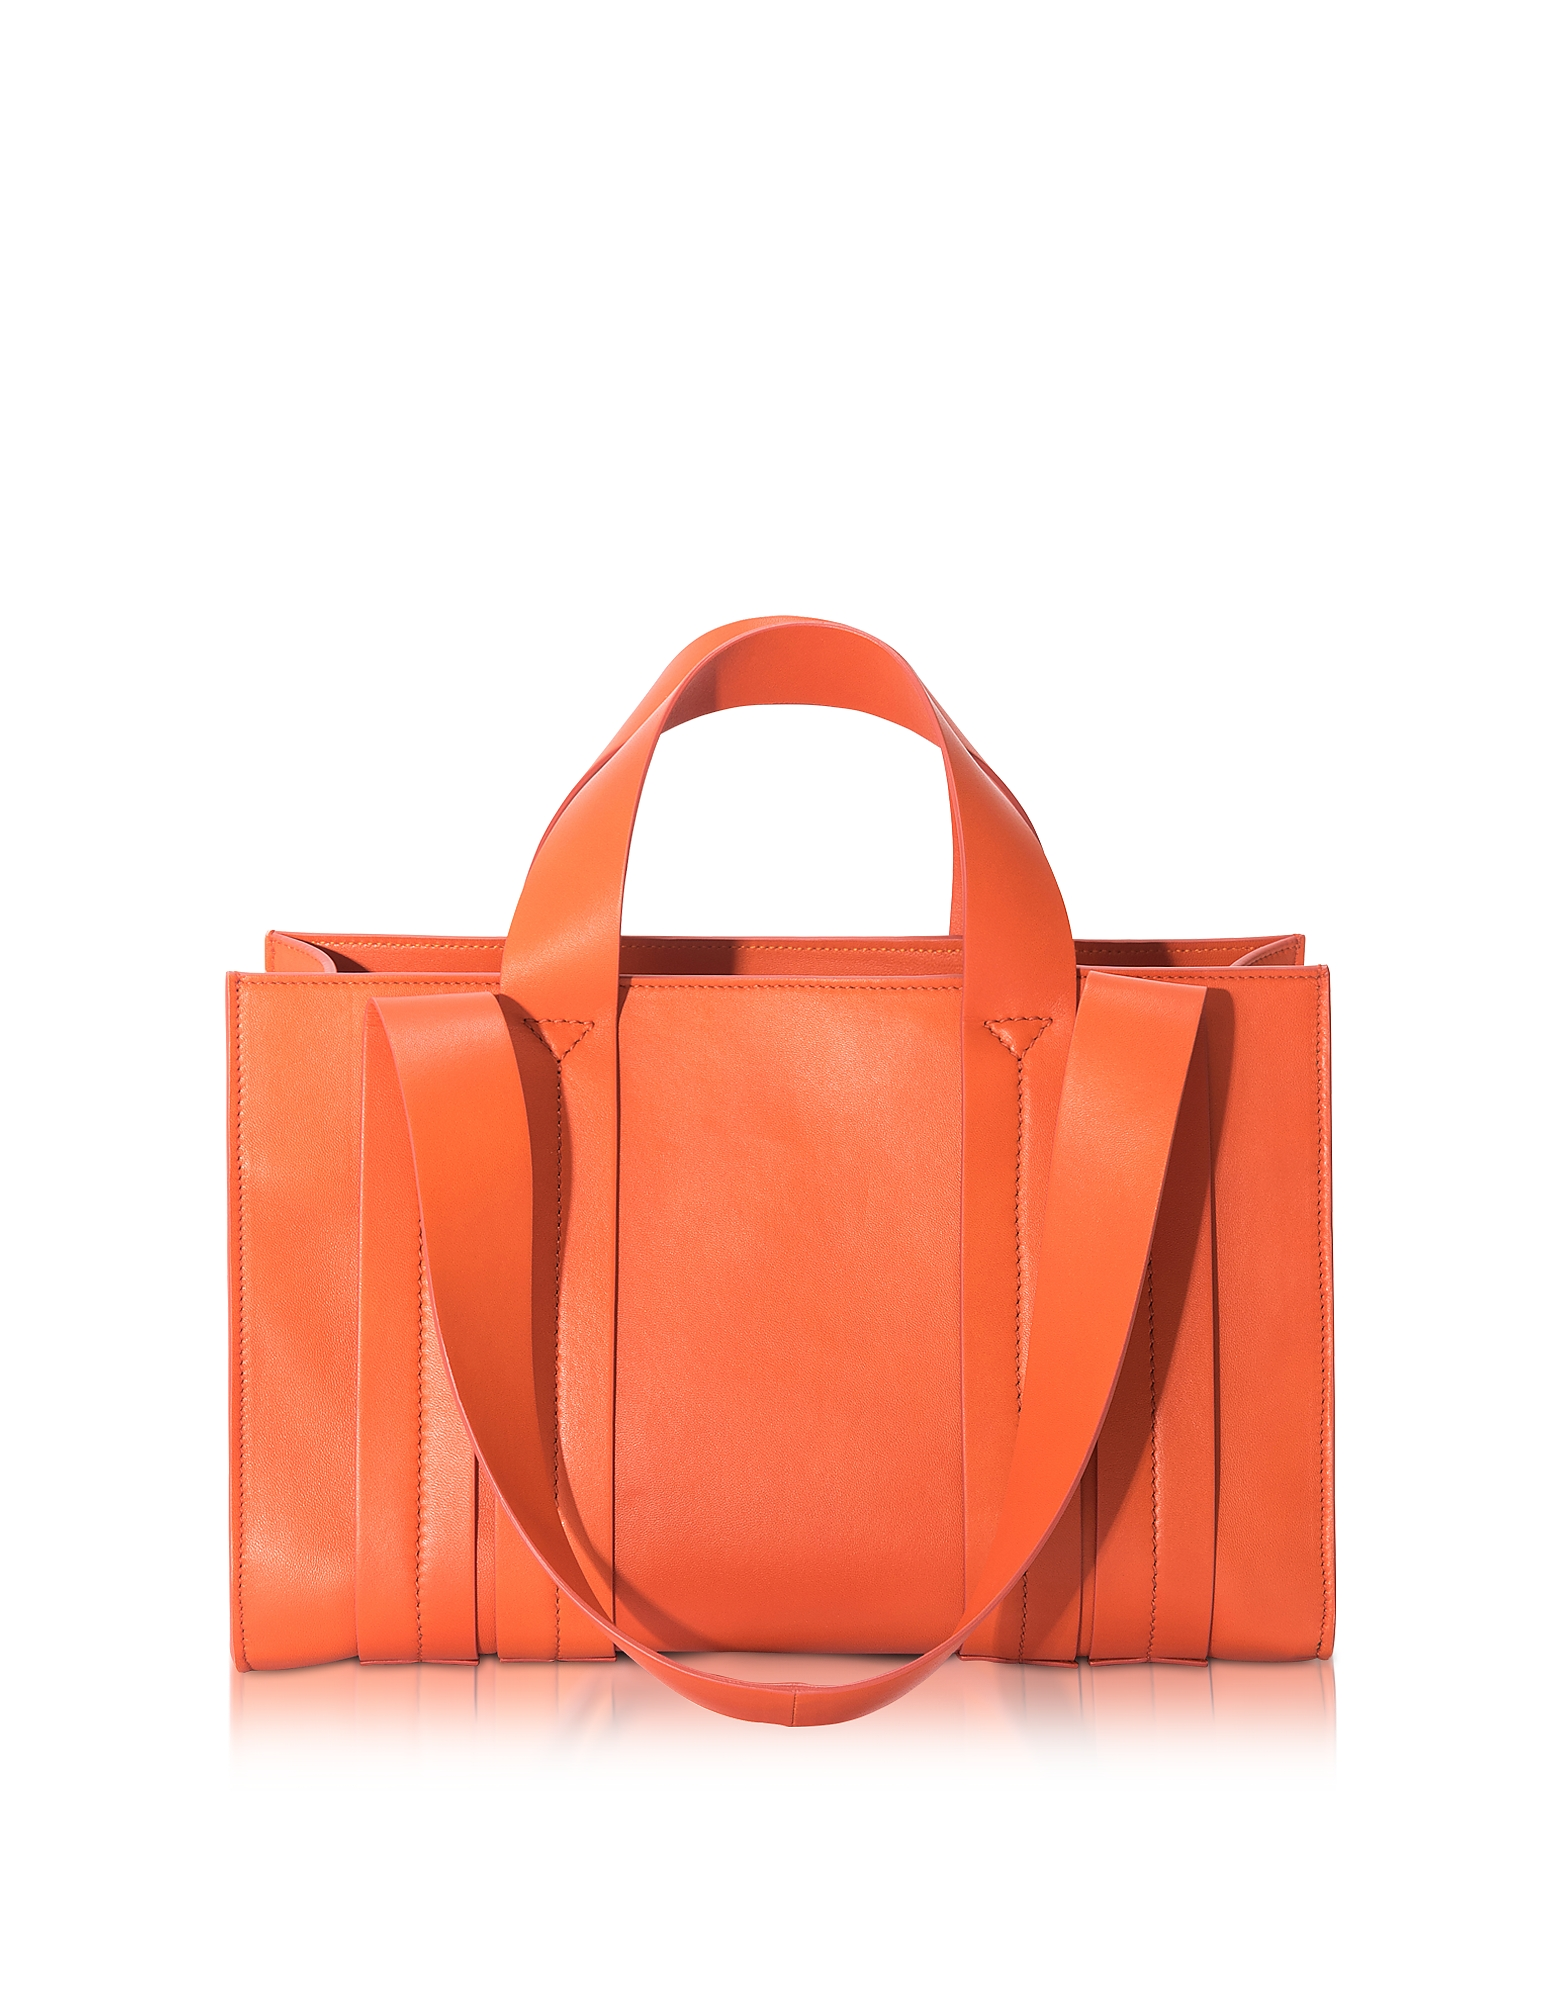 Corto Moltedo Handbags, Costanza Orange Persimmon Medium Tote